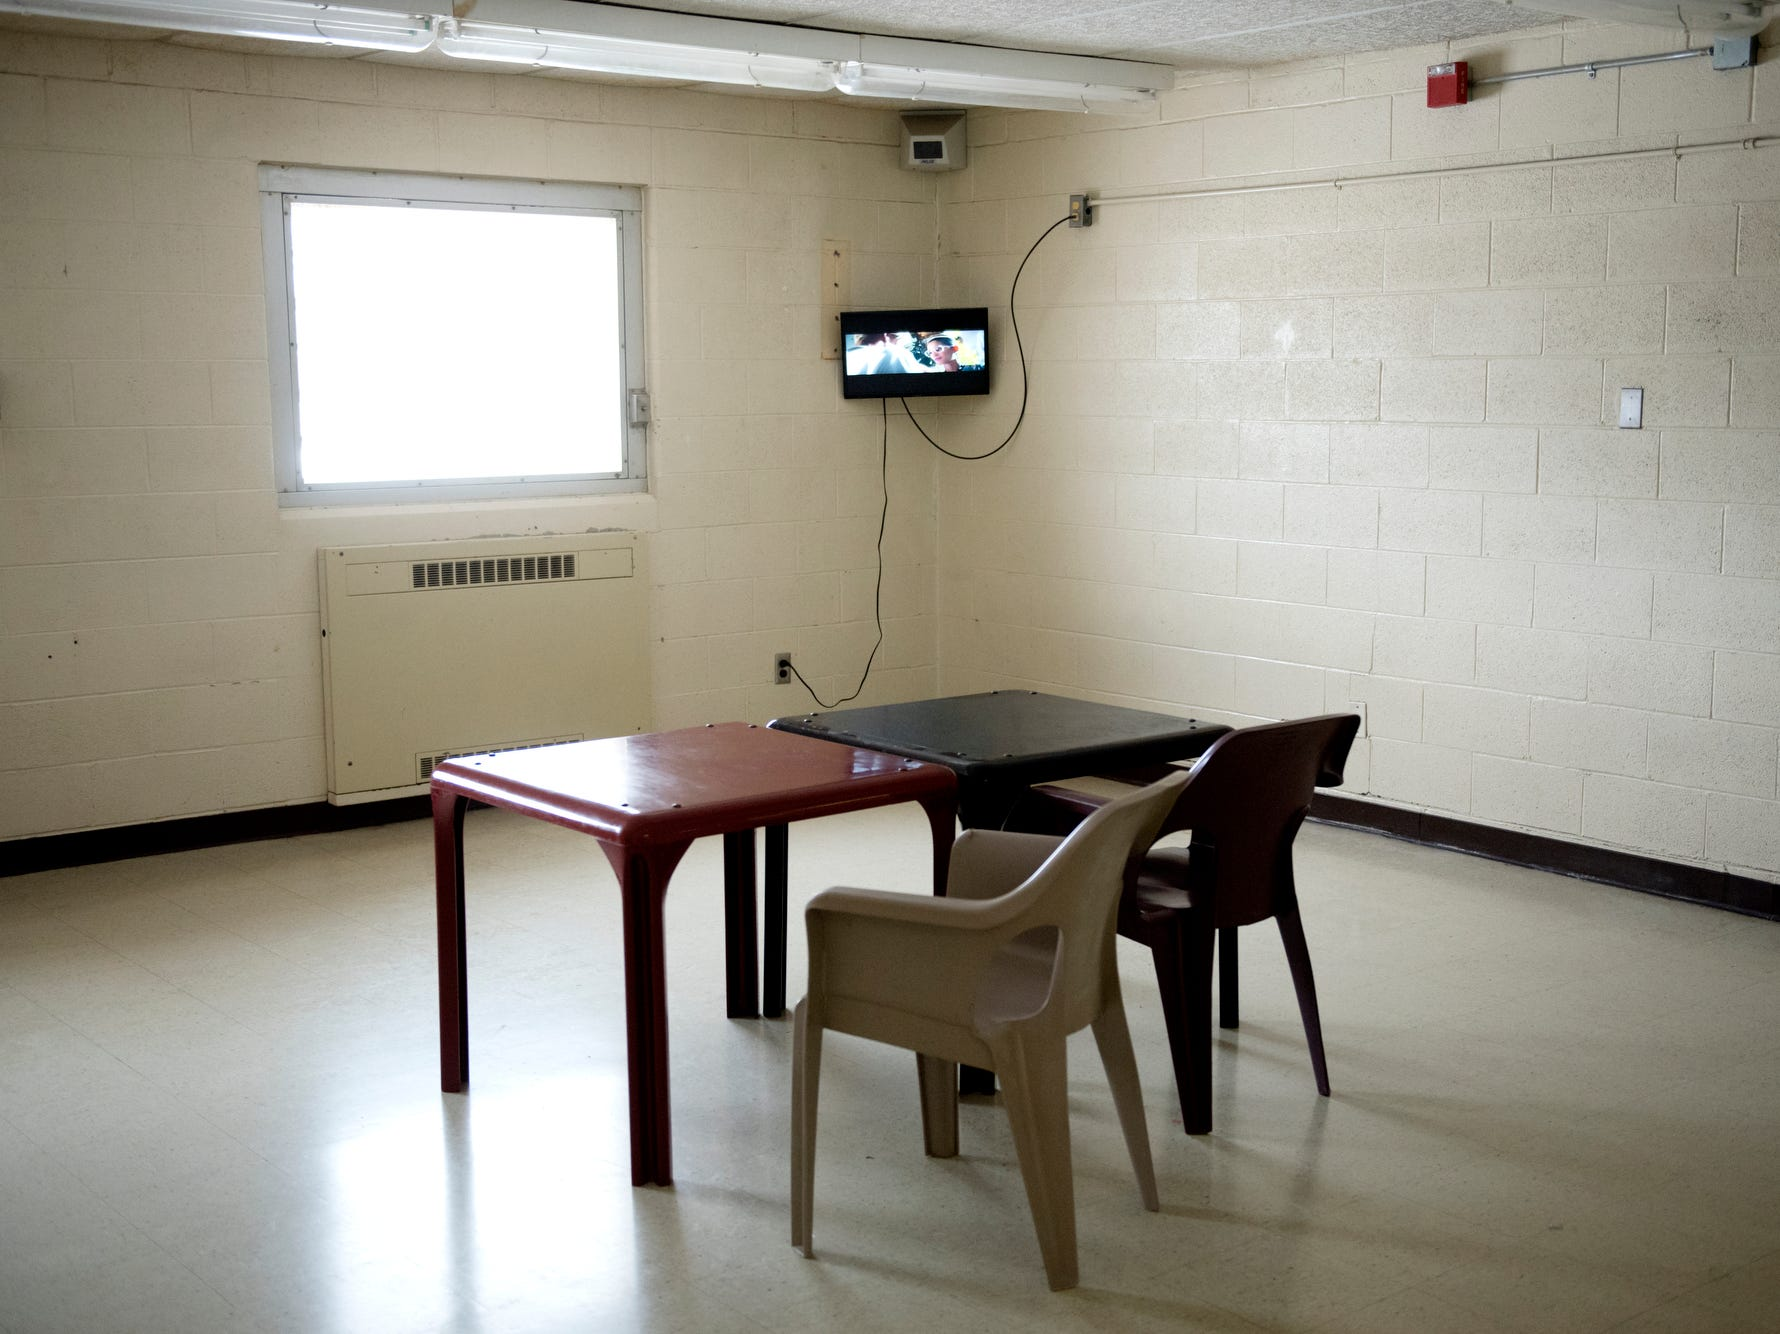 A recreation room photographed during a tour of the Ingham County Jail on Tuesday, April 24, 2018, in Mason.